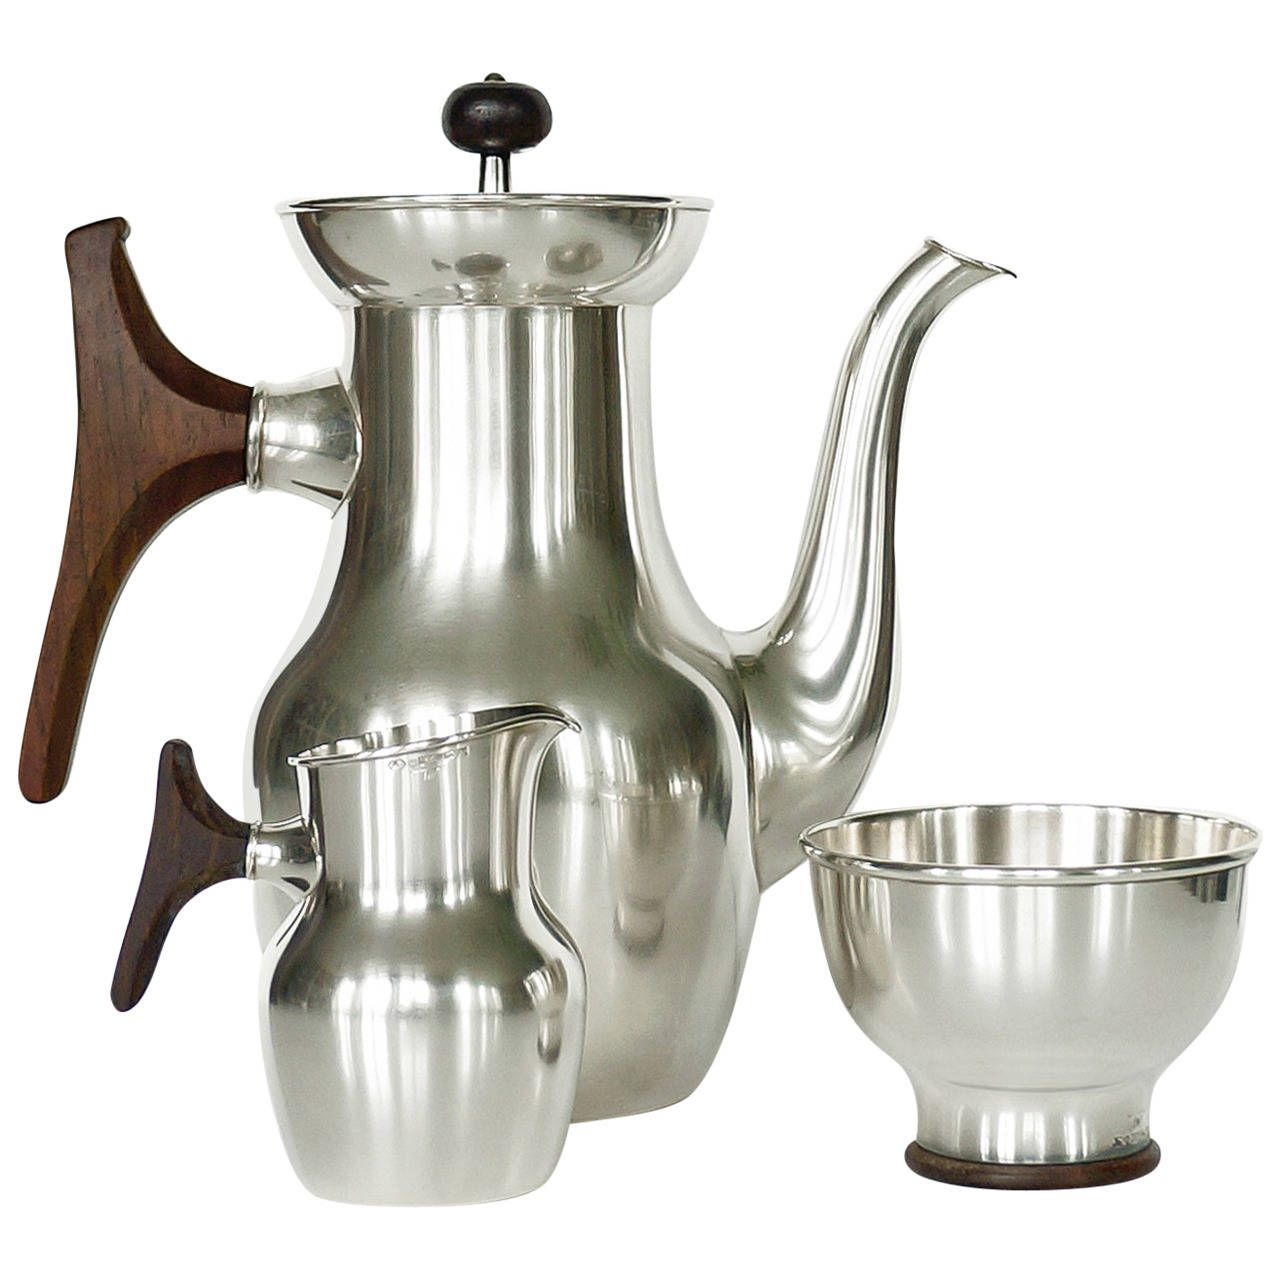 Tapio Wirkkala, Silver Coffee Tea Service, Handmade to Order by Kultakeskus Oy | From a unique collection of antique and modern sterling silver at https://www.1stdibs.com/furniture/dining-entertaining/sterling-silver/